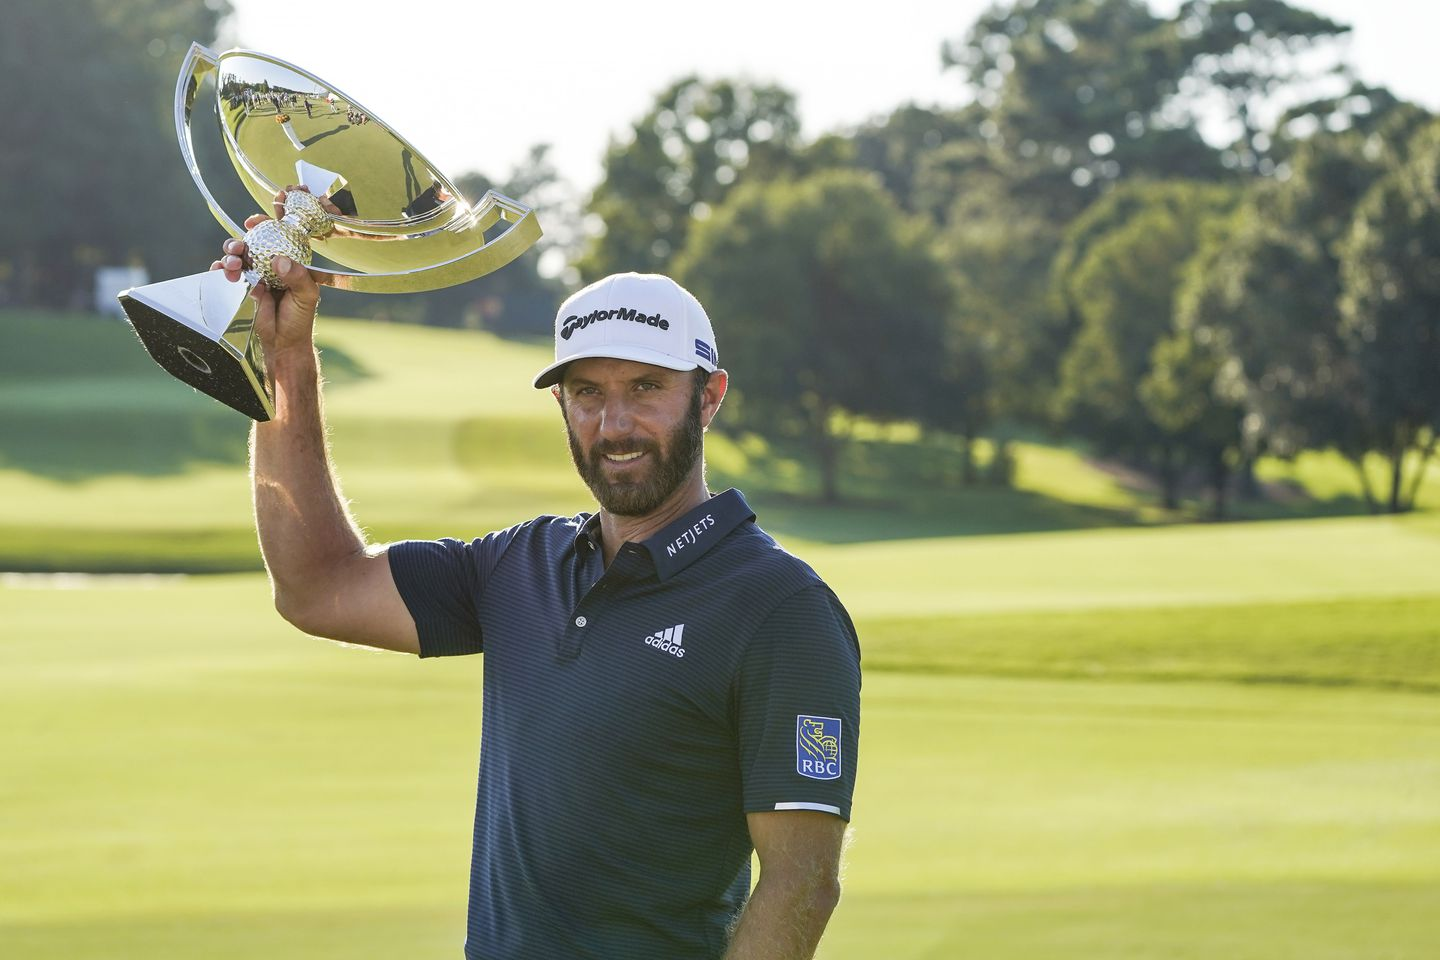 choque Limo cometer  PGA Tour takeaways: Never mind Player of the Year; Dustin Johnson might be  the player of his generation - The Boston Globe